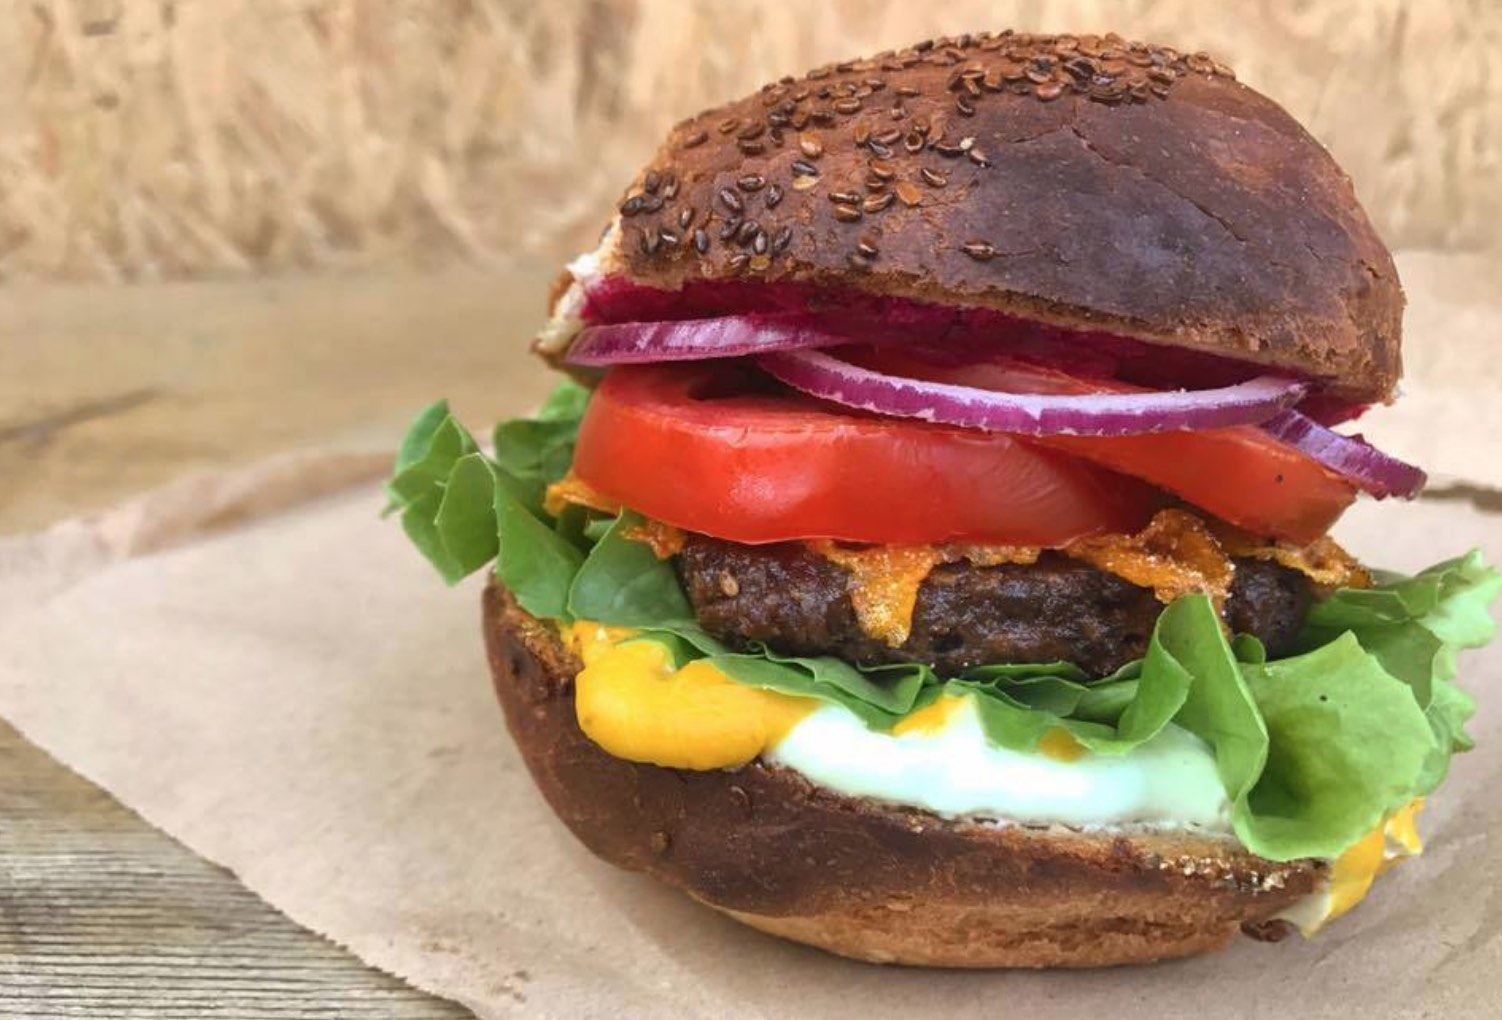 Vegan Burger with Lettuce, Onion, and Tomato